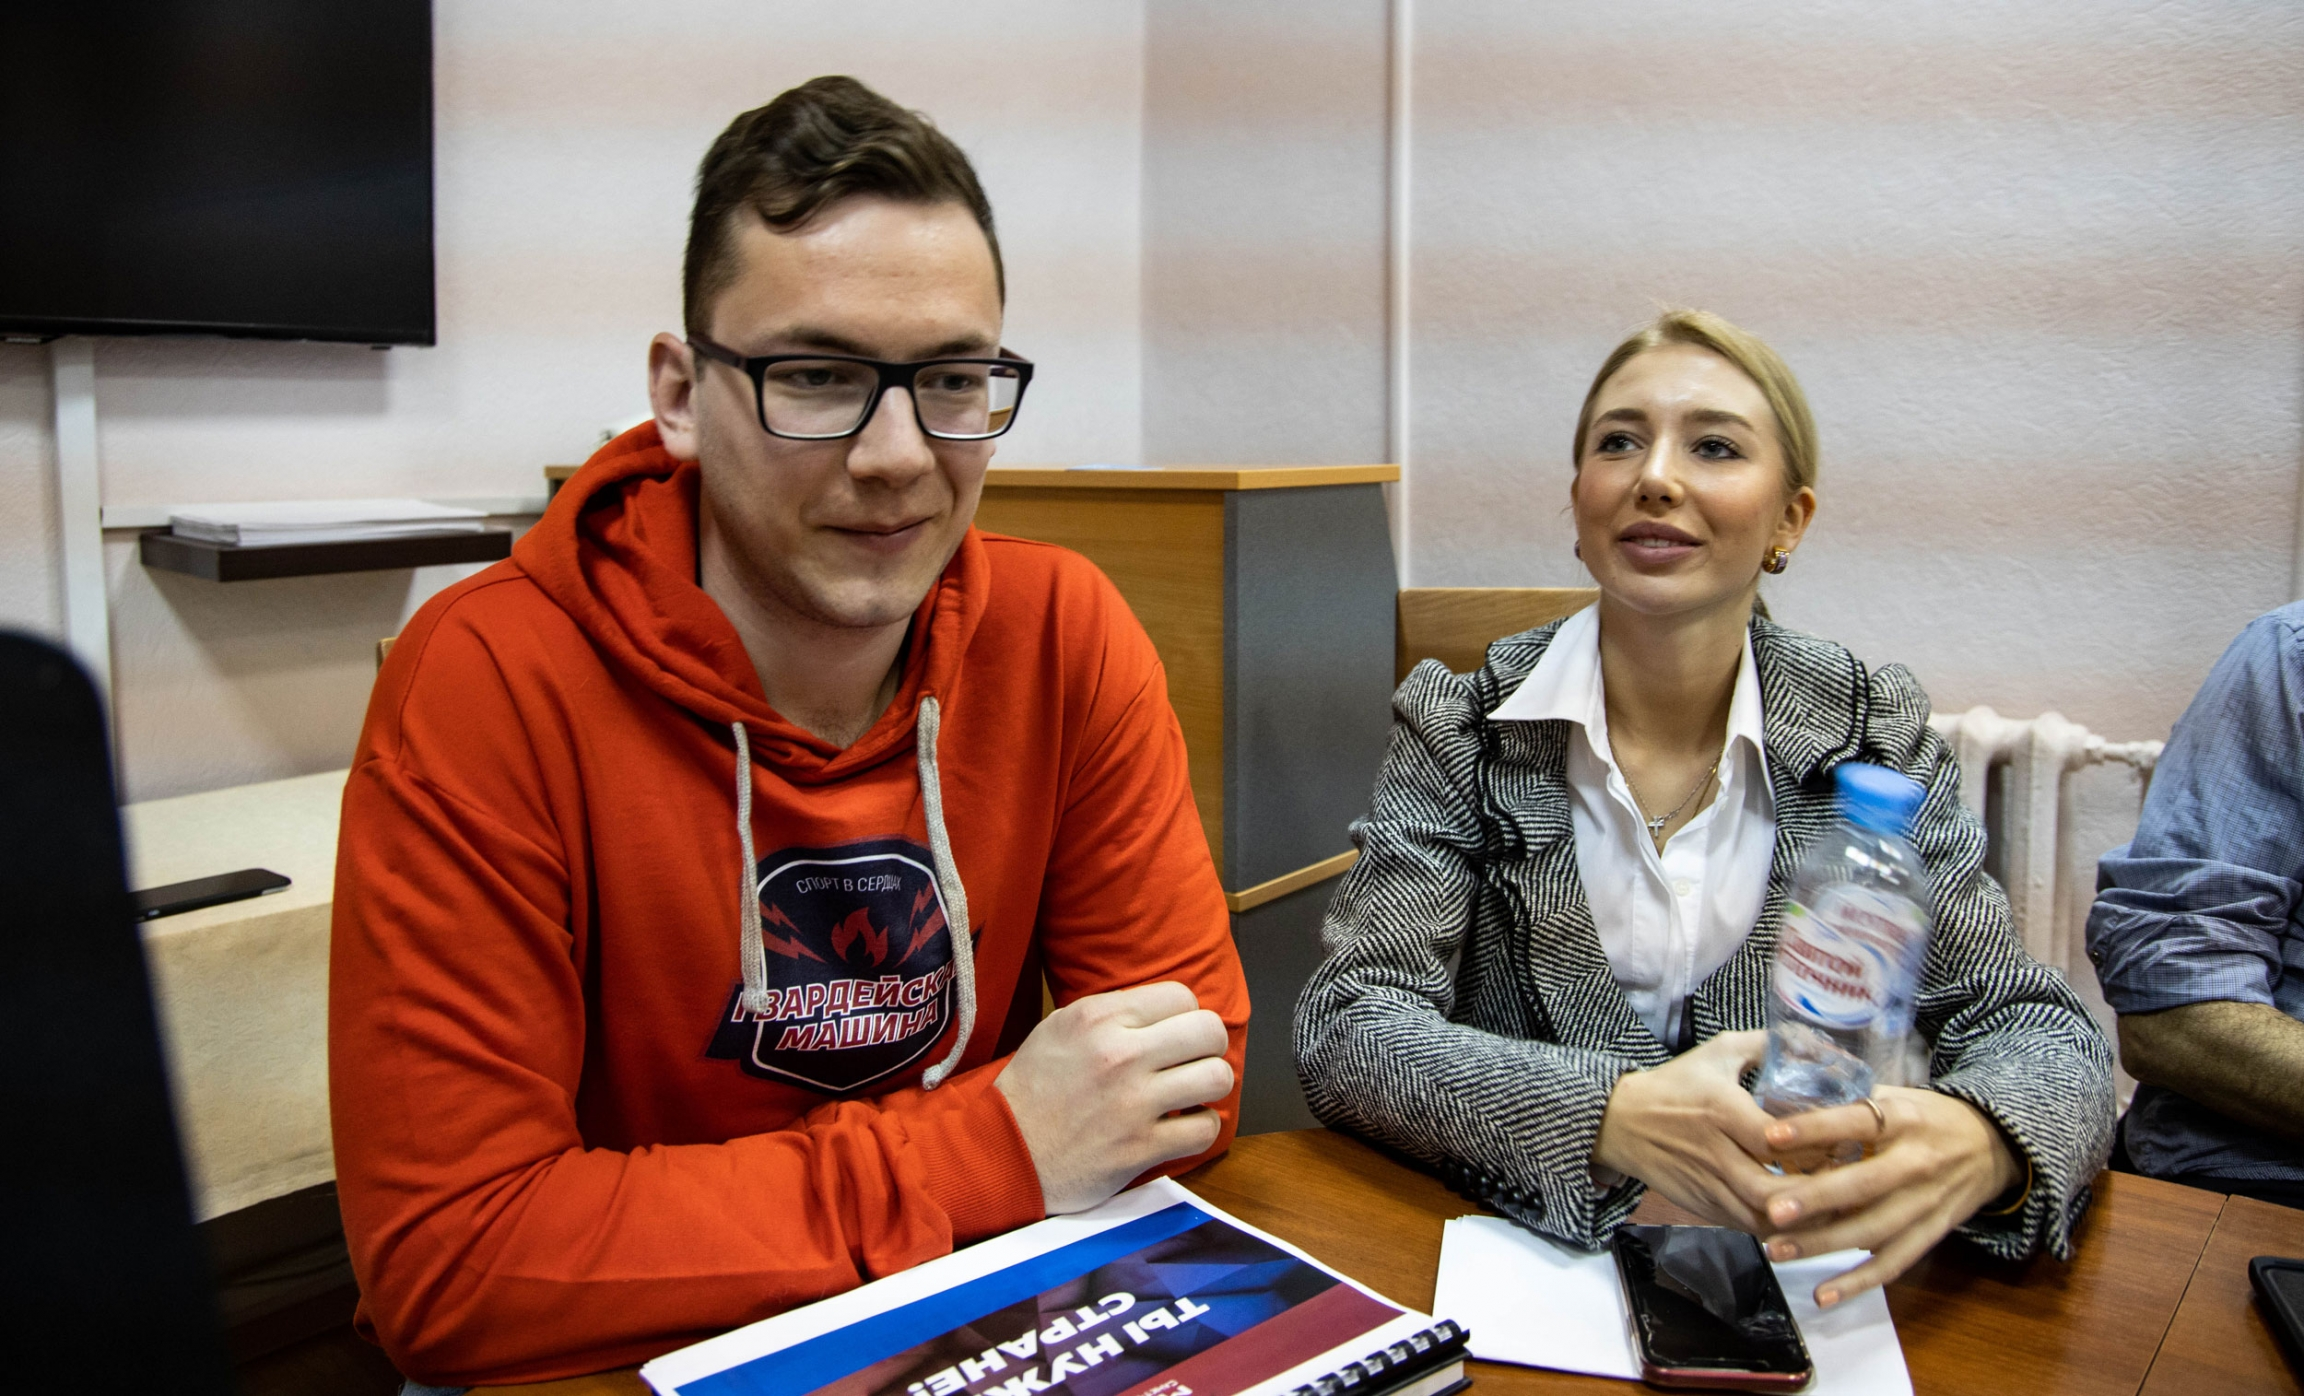 Two young people sit at a table. One young man is wearing an orange hoodie with Russian words on it.